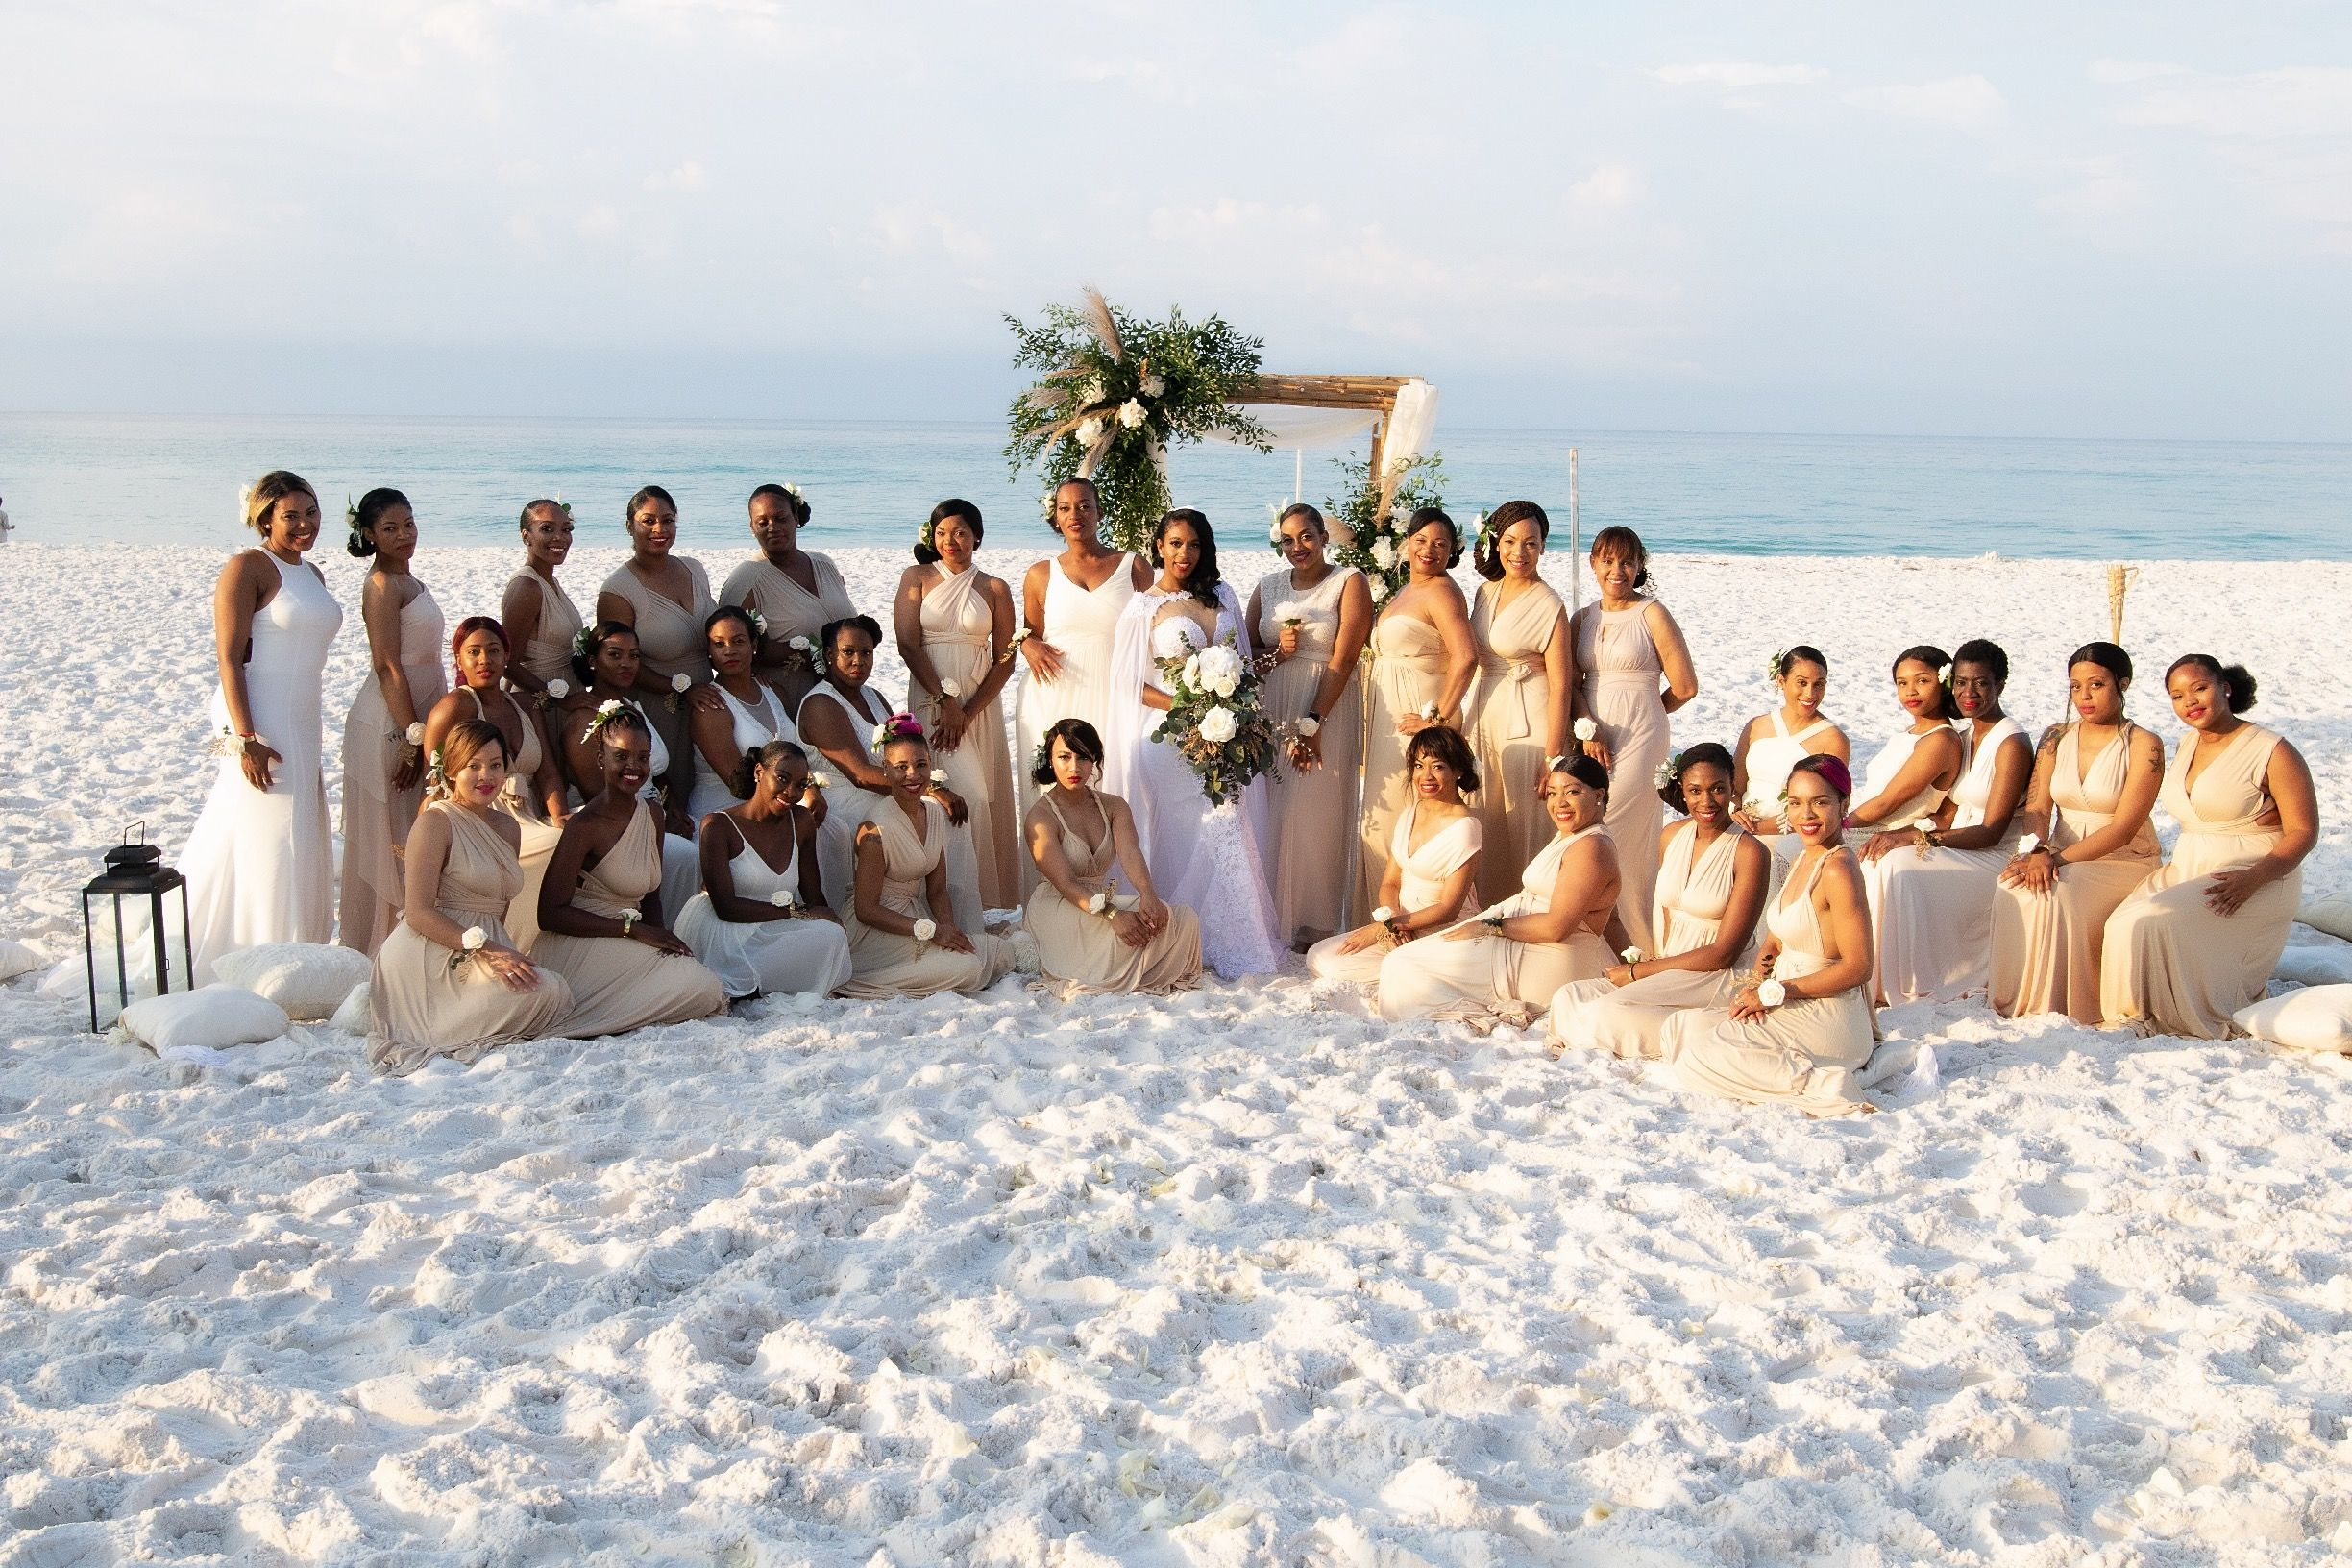 Bride with 34 Bridesmaids Originally Planned for 50